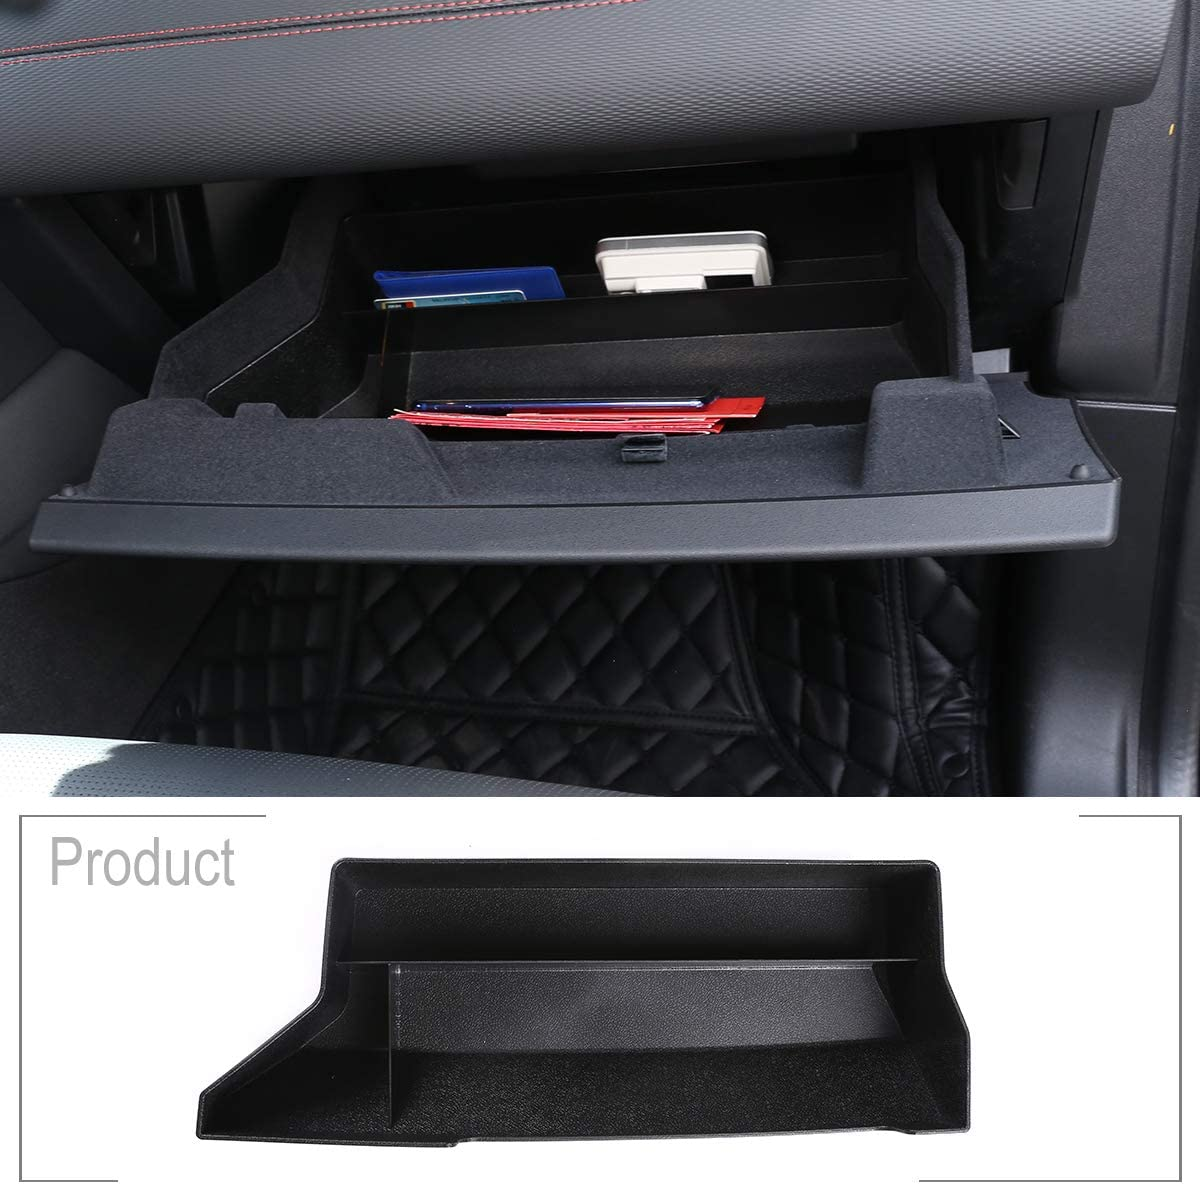 TongSheng ABS Black Car Interior Co-Pilot Glove Storage Box Container Tray Organizer for Land Rover Discovery Sport 2019-2020 for Range Rover Evoque L551 2020